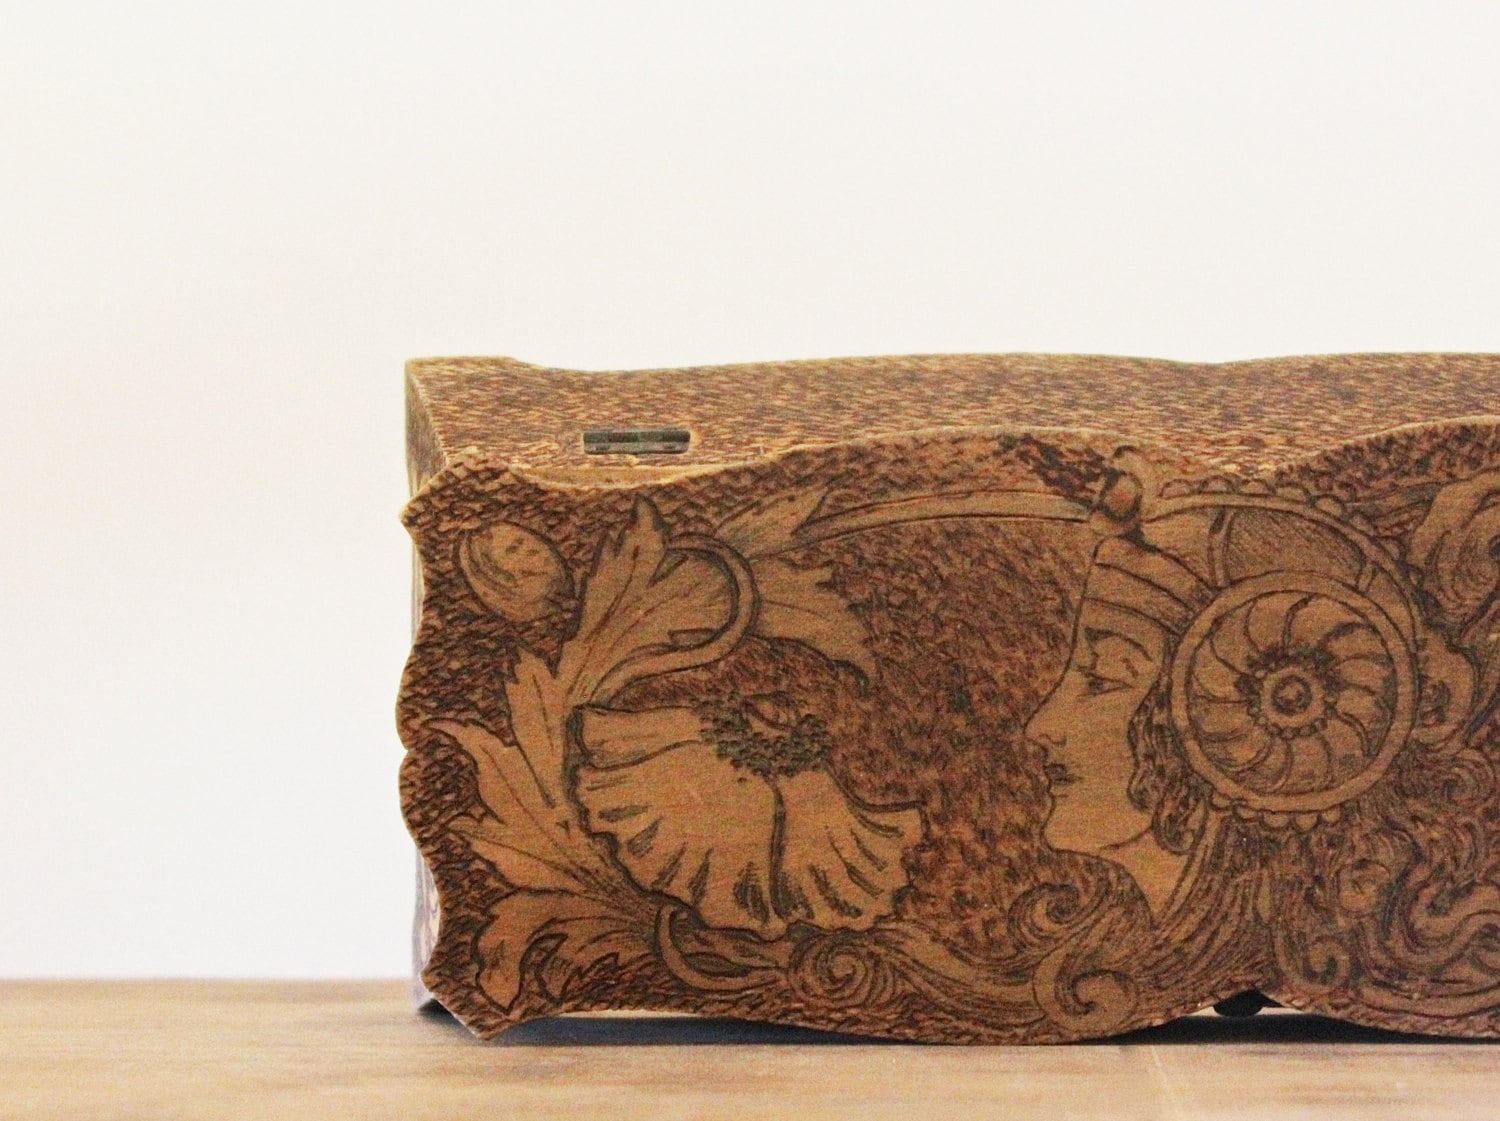 Burned - Antique 1910 Pyrographic Box - Pyrography - Brown - Vintage Home Decor - Wood Burning - Fine Art - becaruns